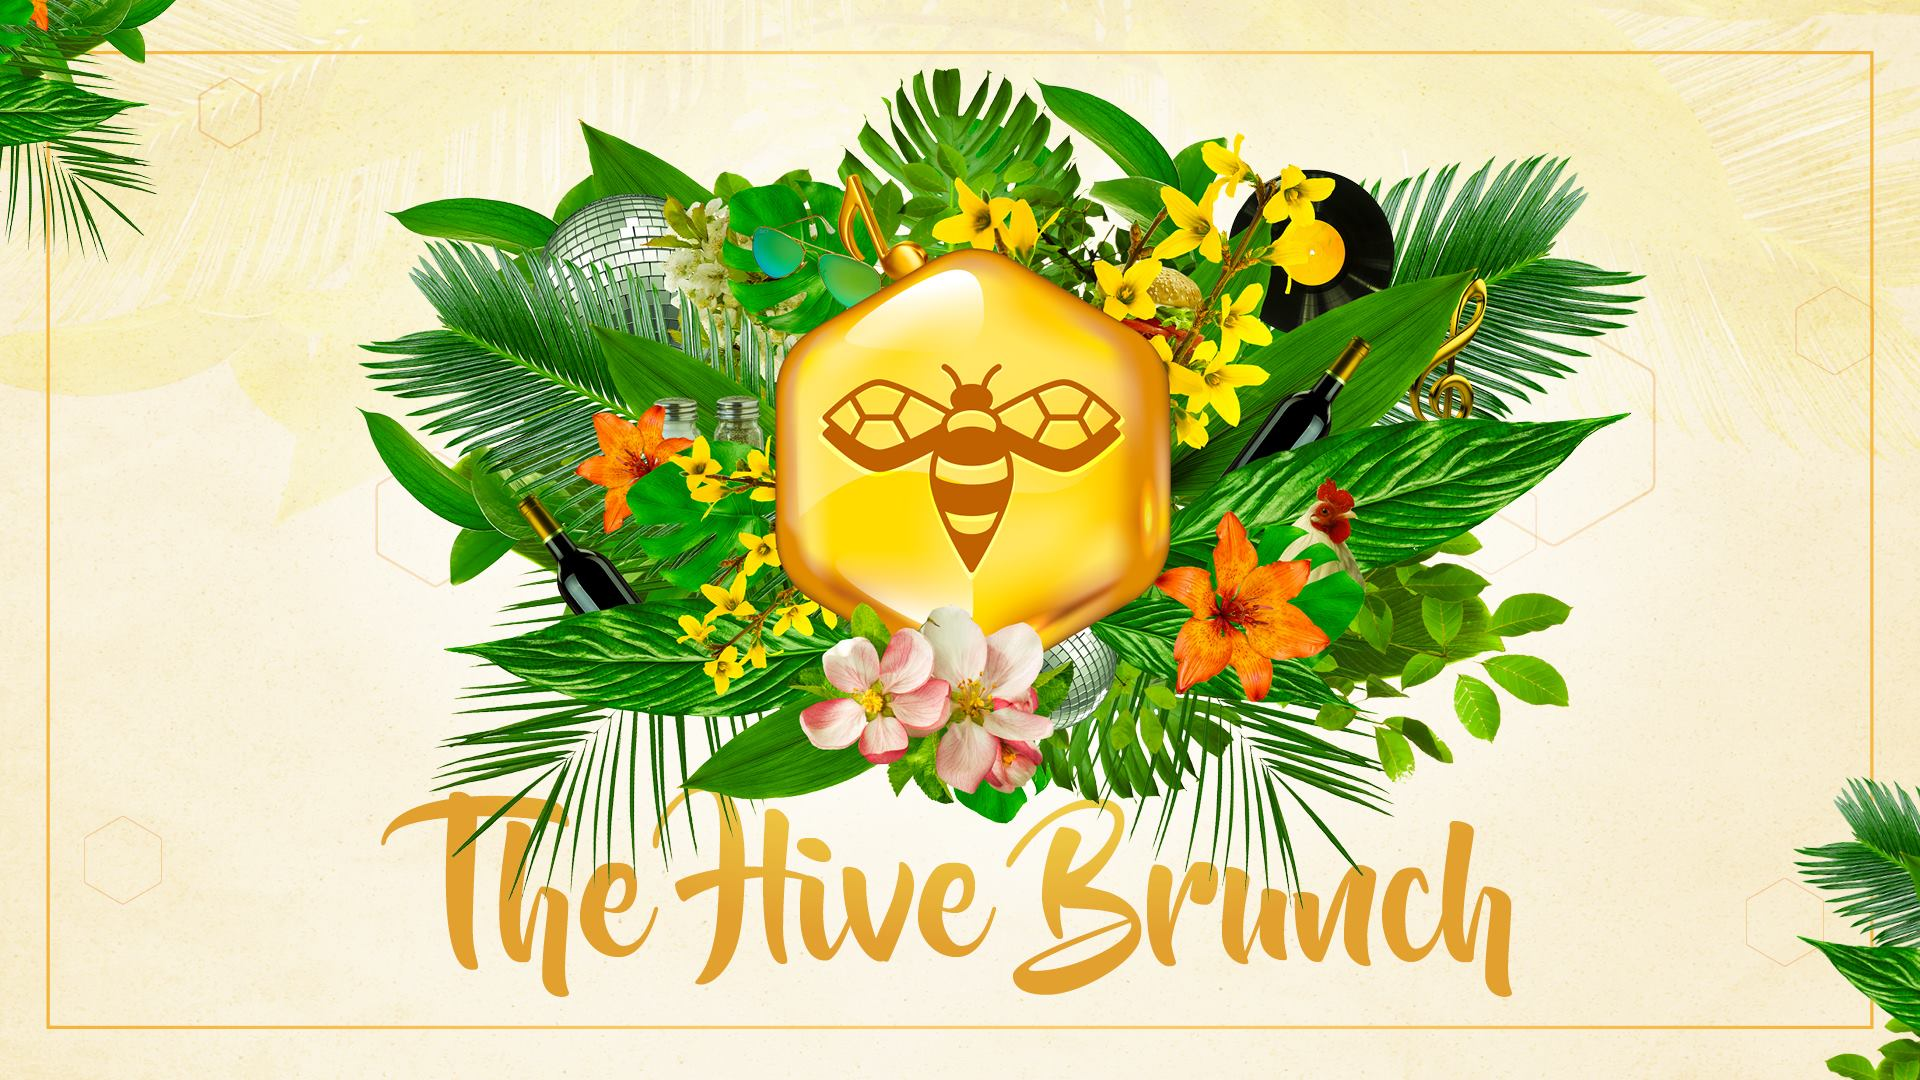 Friday Hive Brunch